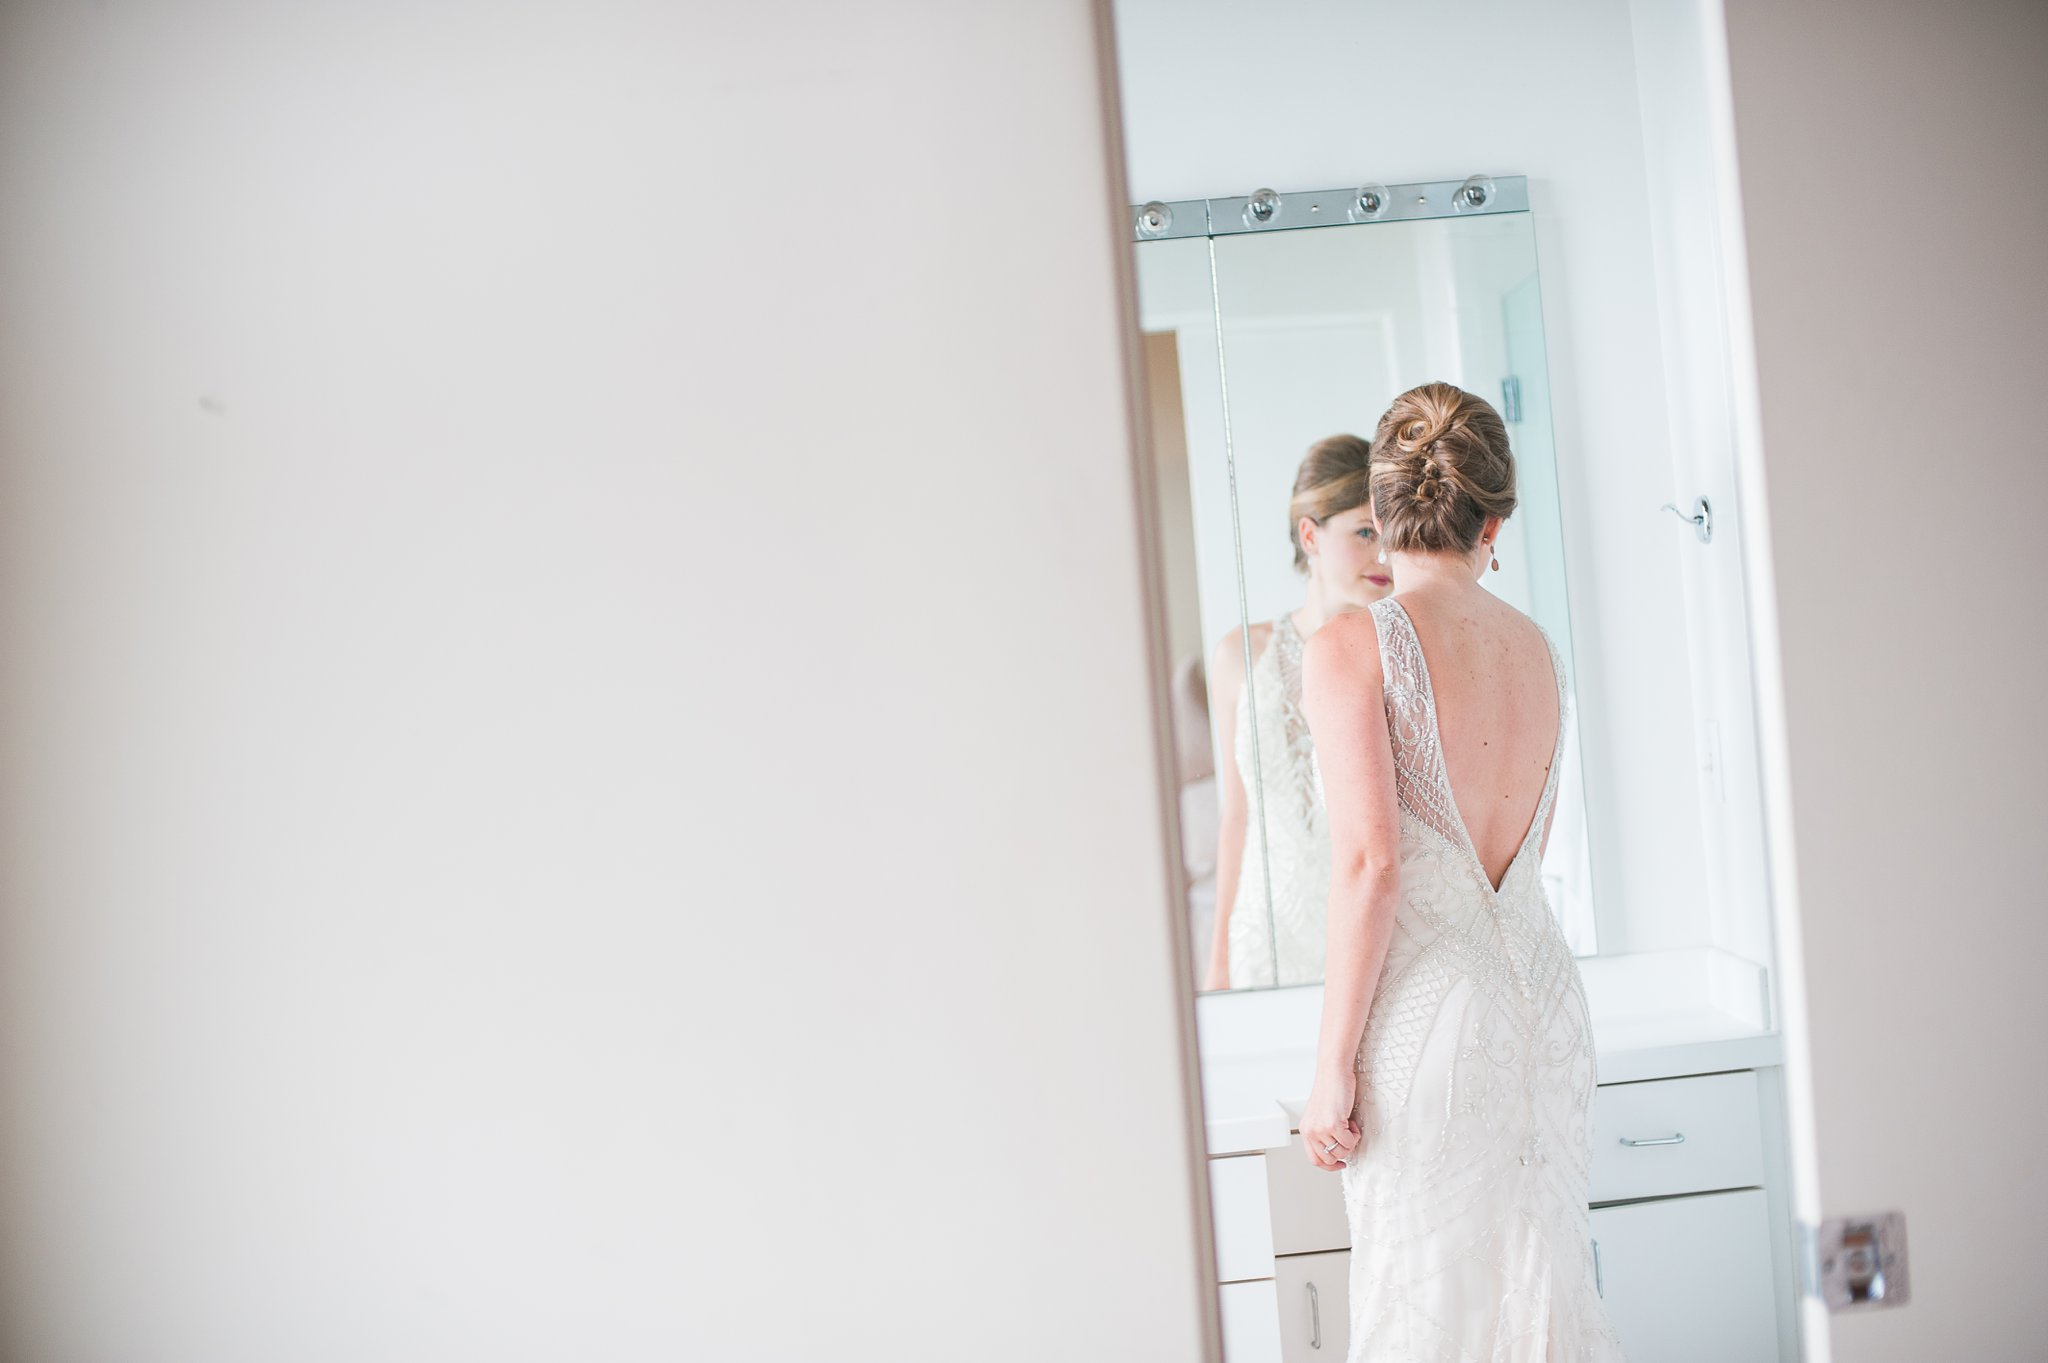 Getting Ready Tips on Your Wedding Day